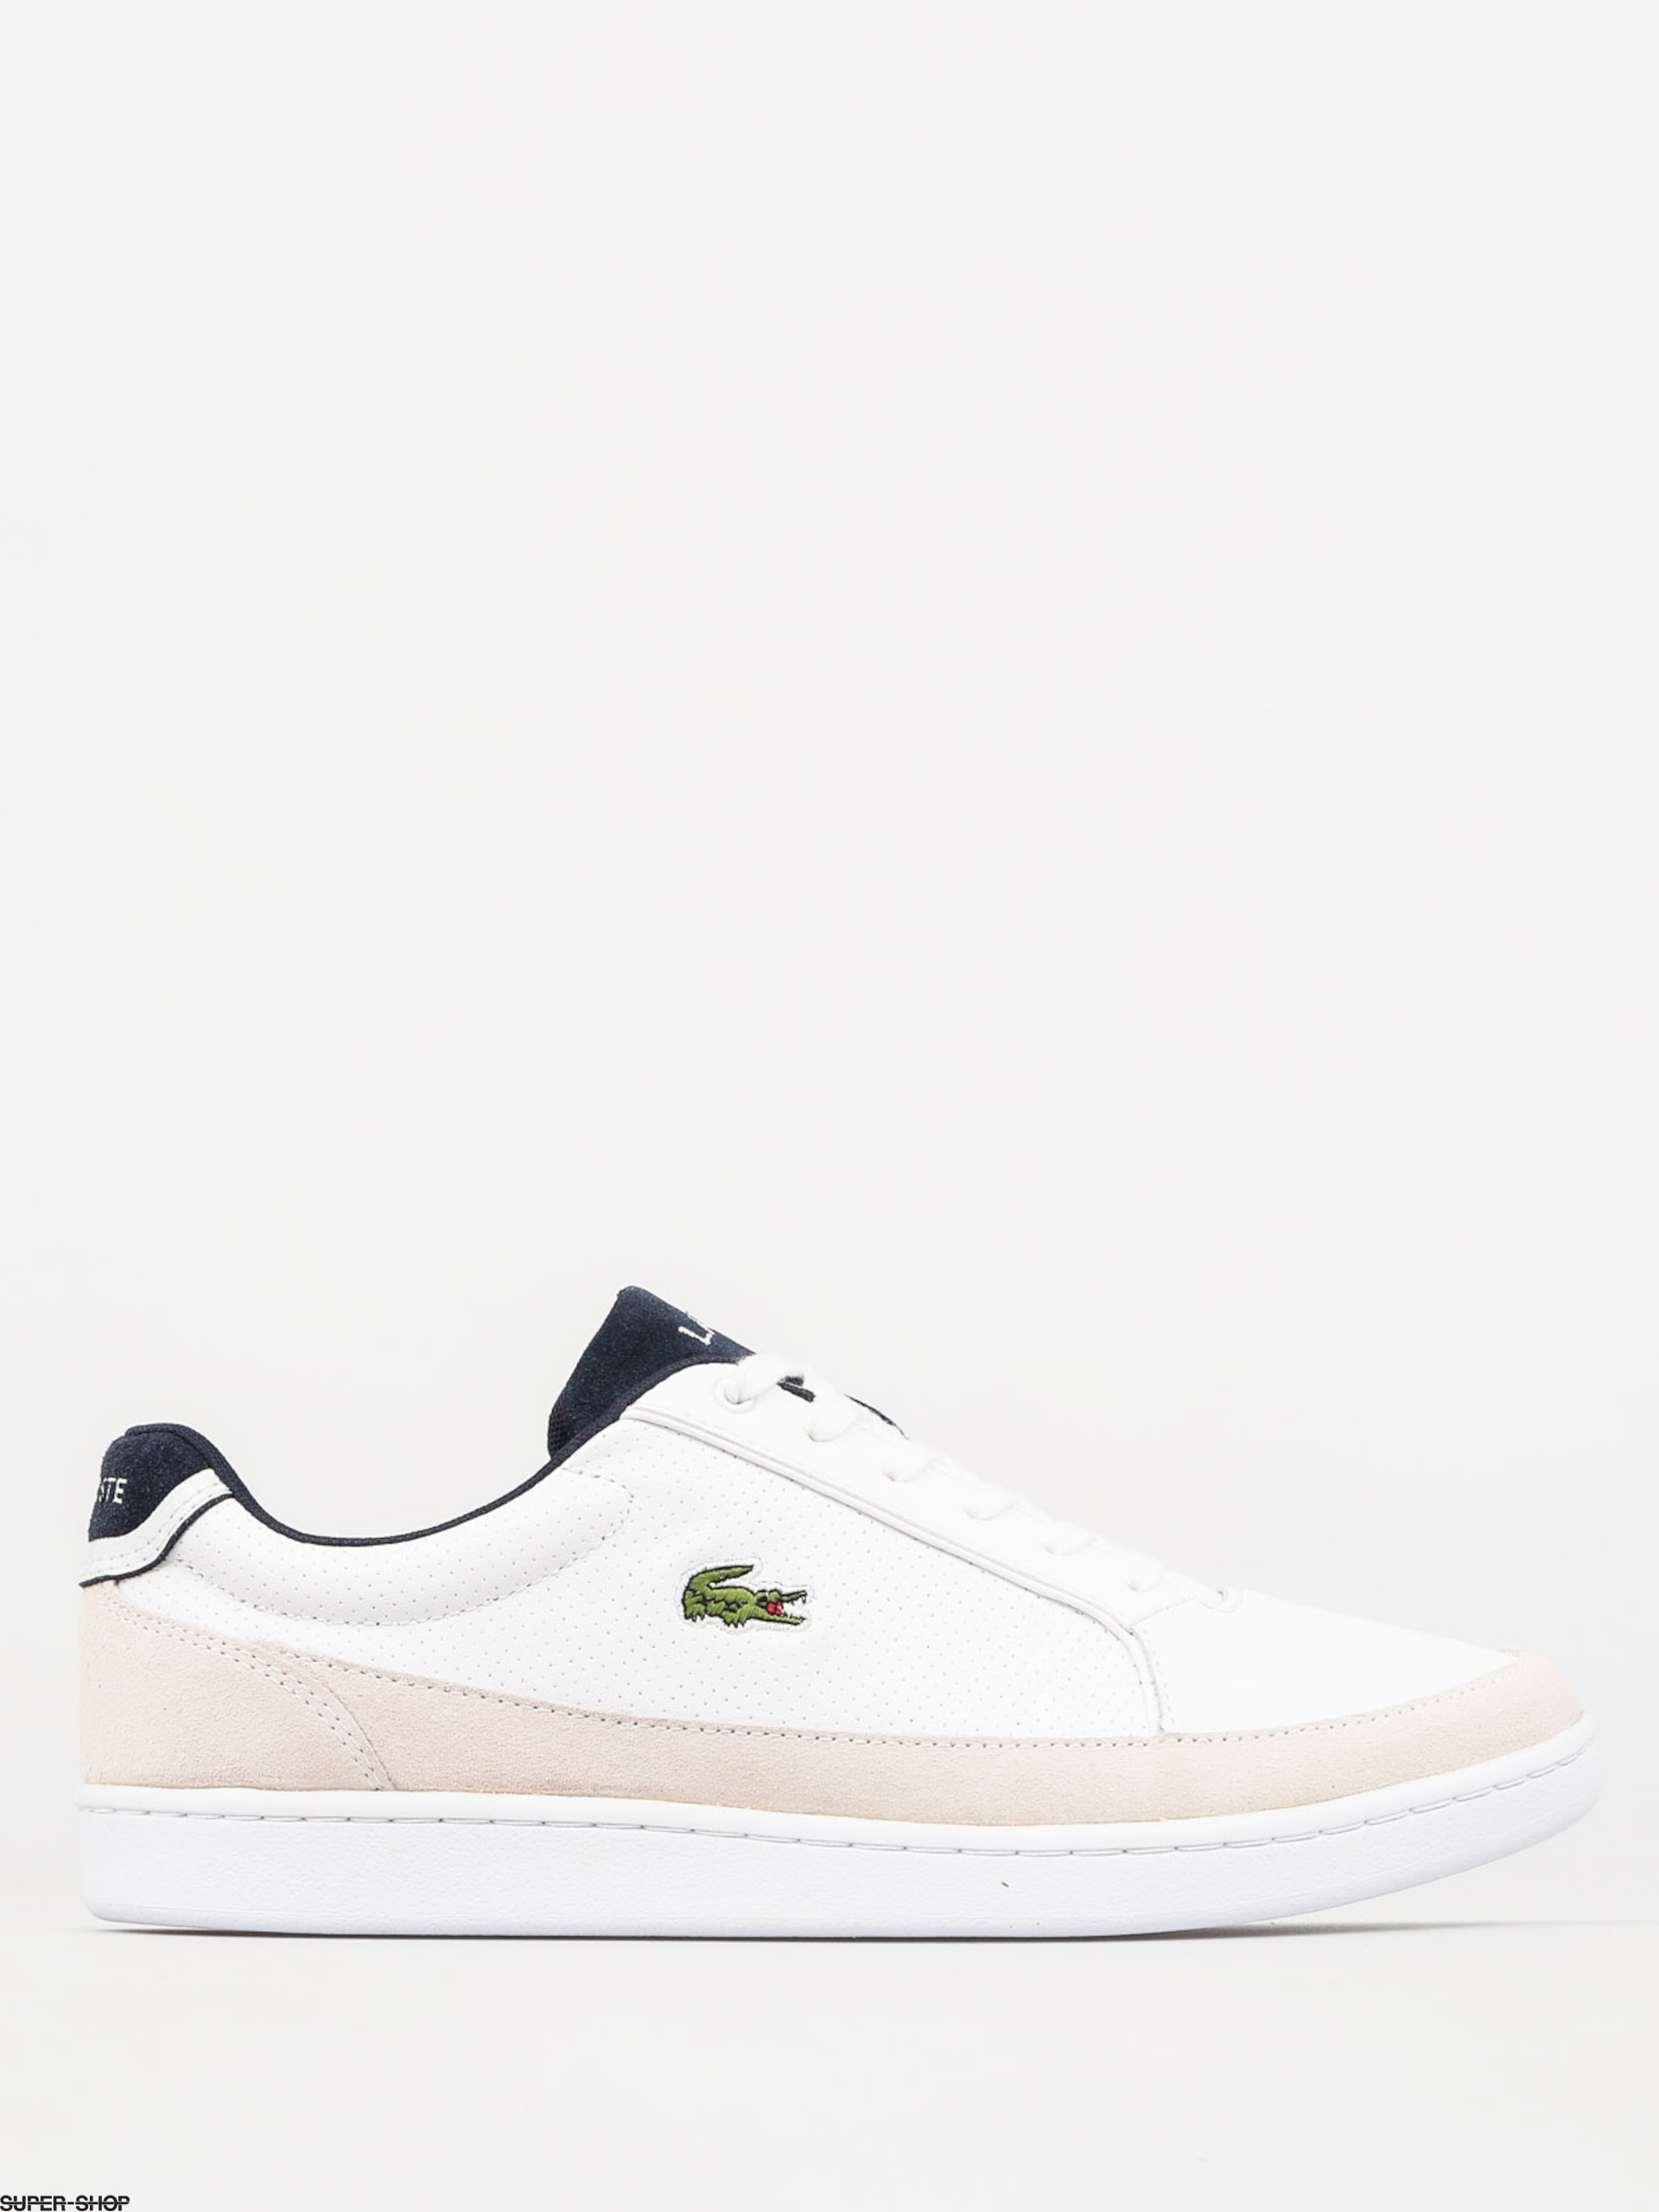 c66e05a52a3e Lacoste Shoes Setplay 117 1 Spm (white leather suede)